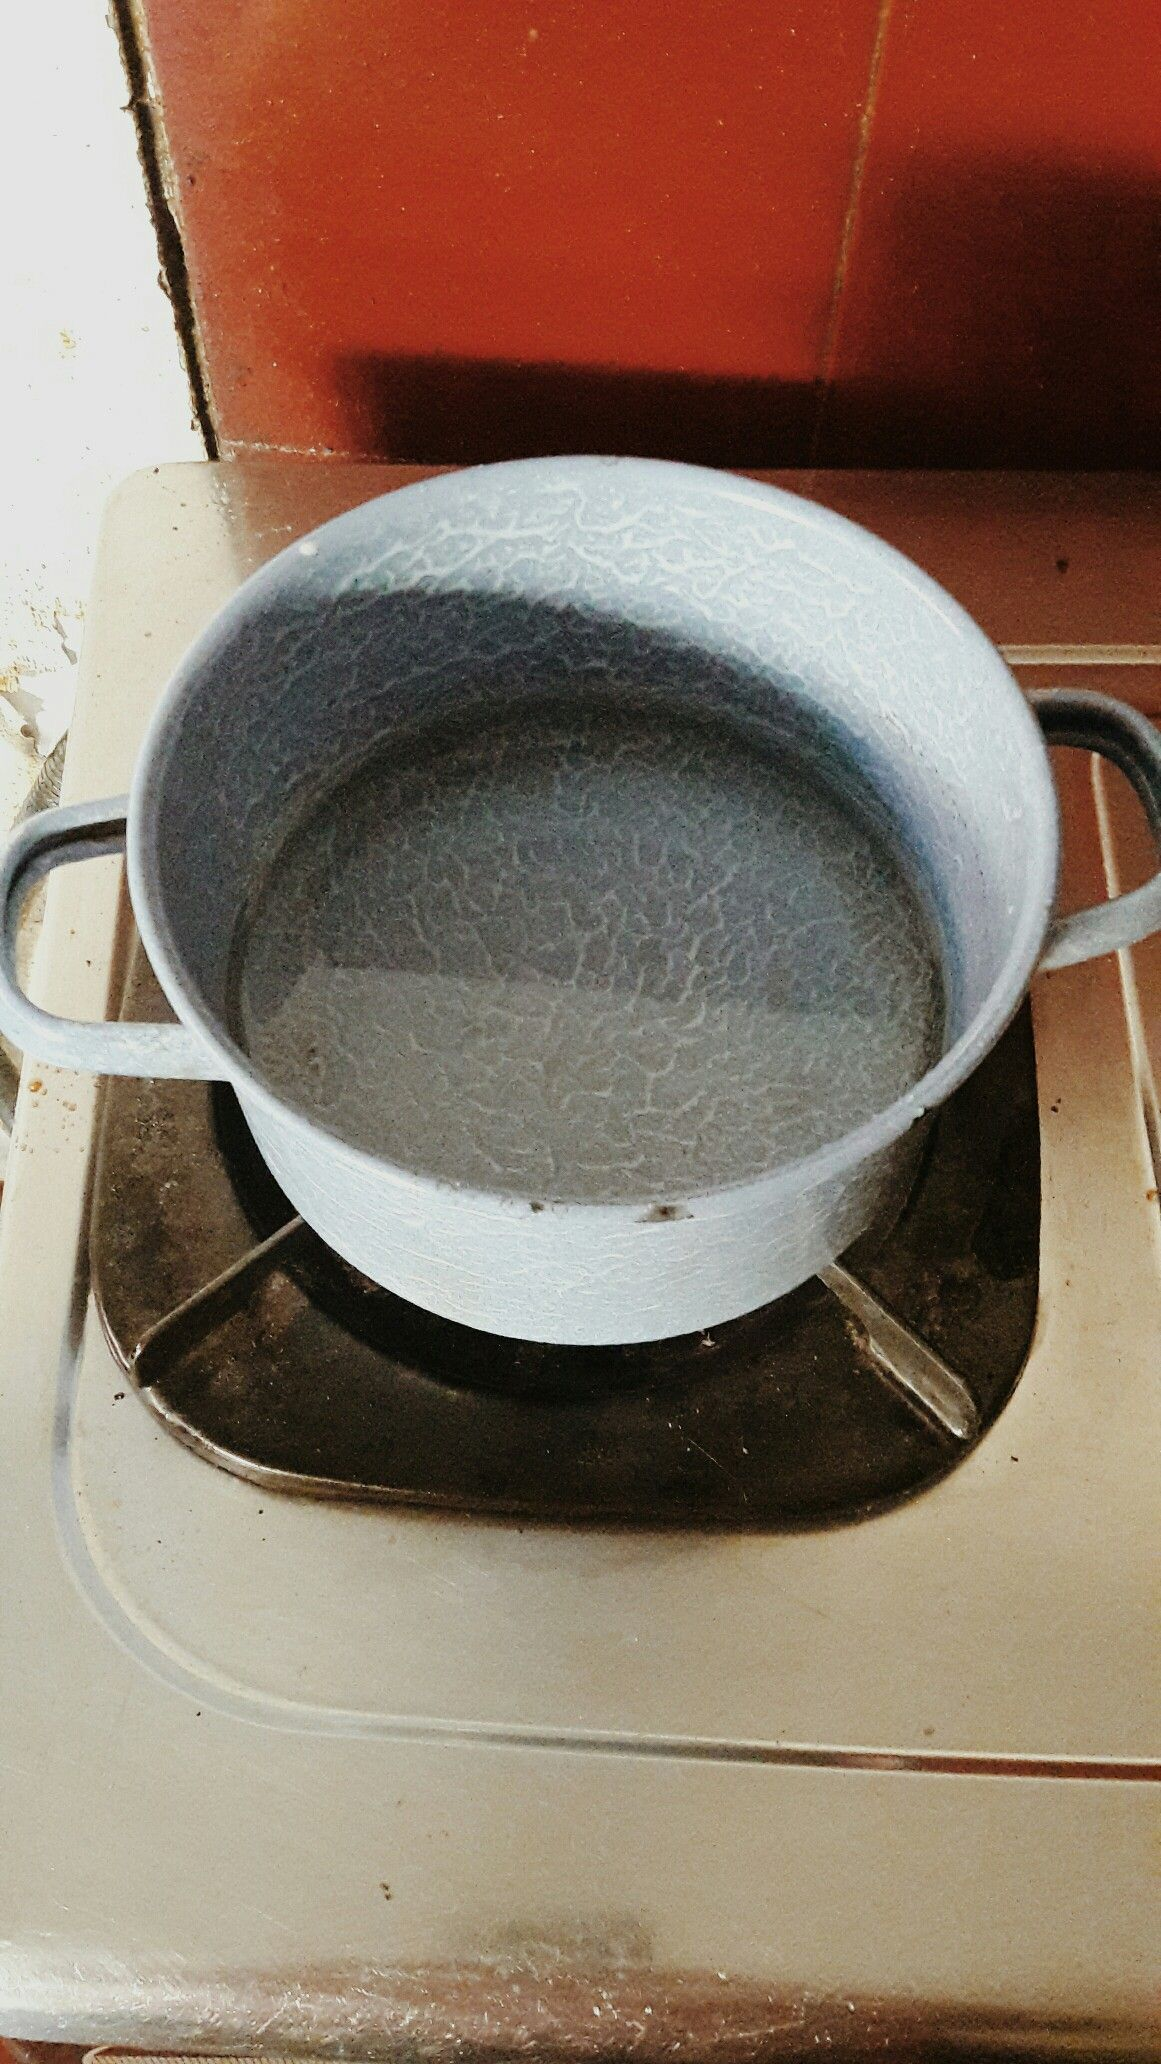 how long to boil water to sterilize bottles